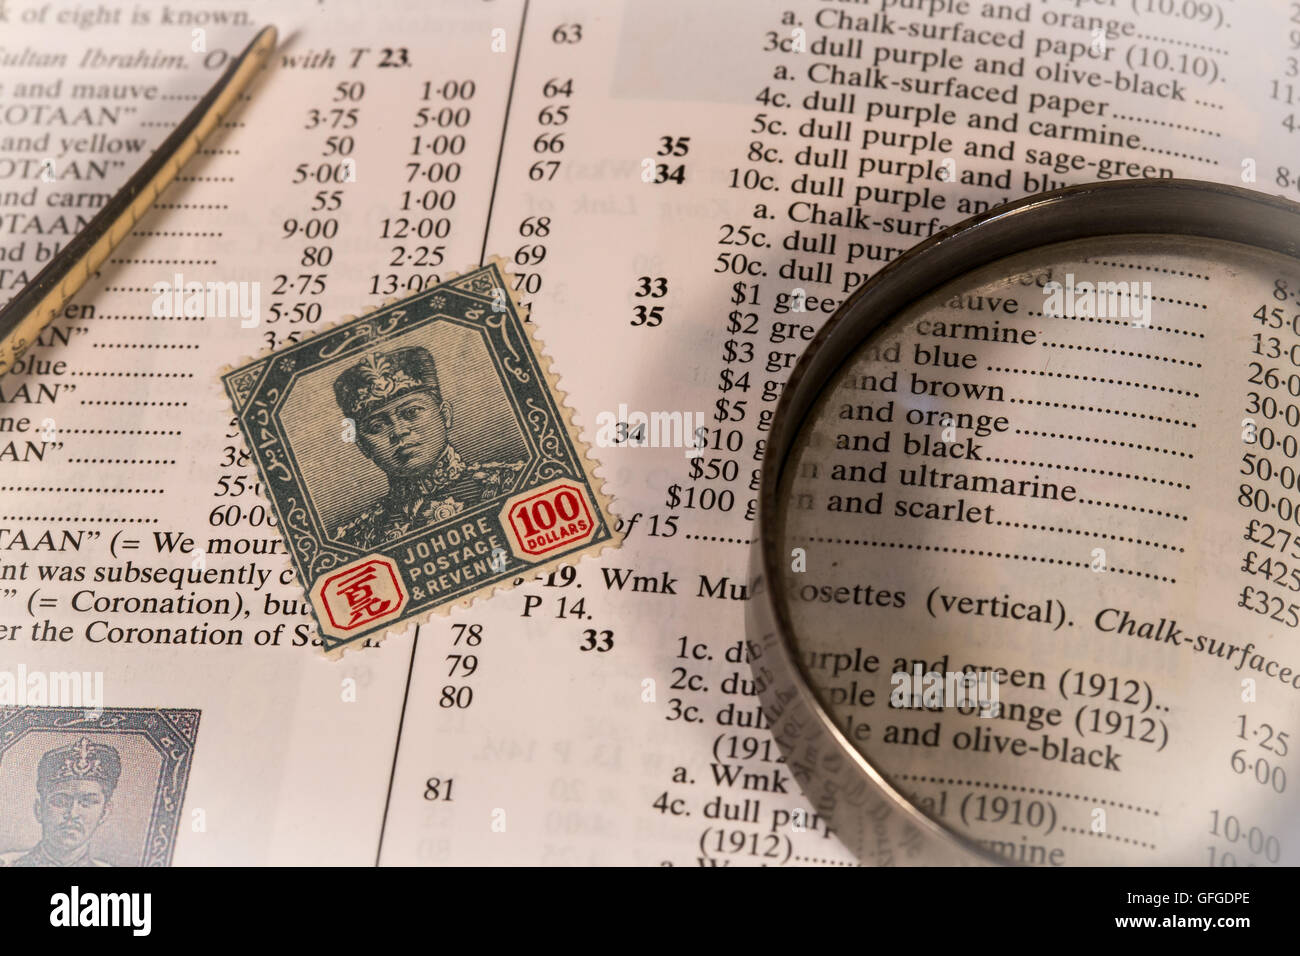 Stamp collecting as a pastime with rare and expensive stamps and High catalogue values Stock Photo